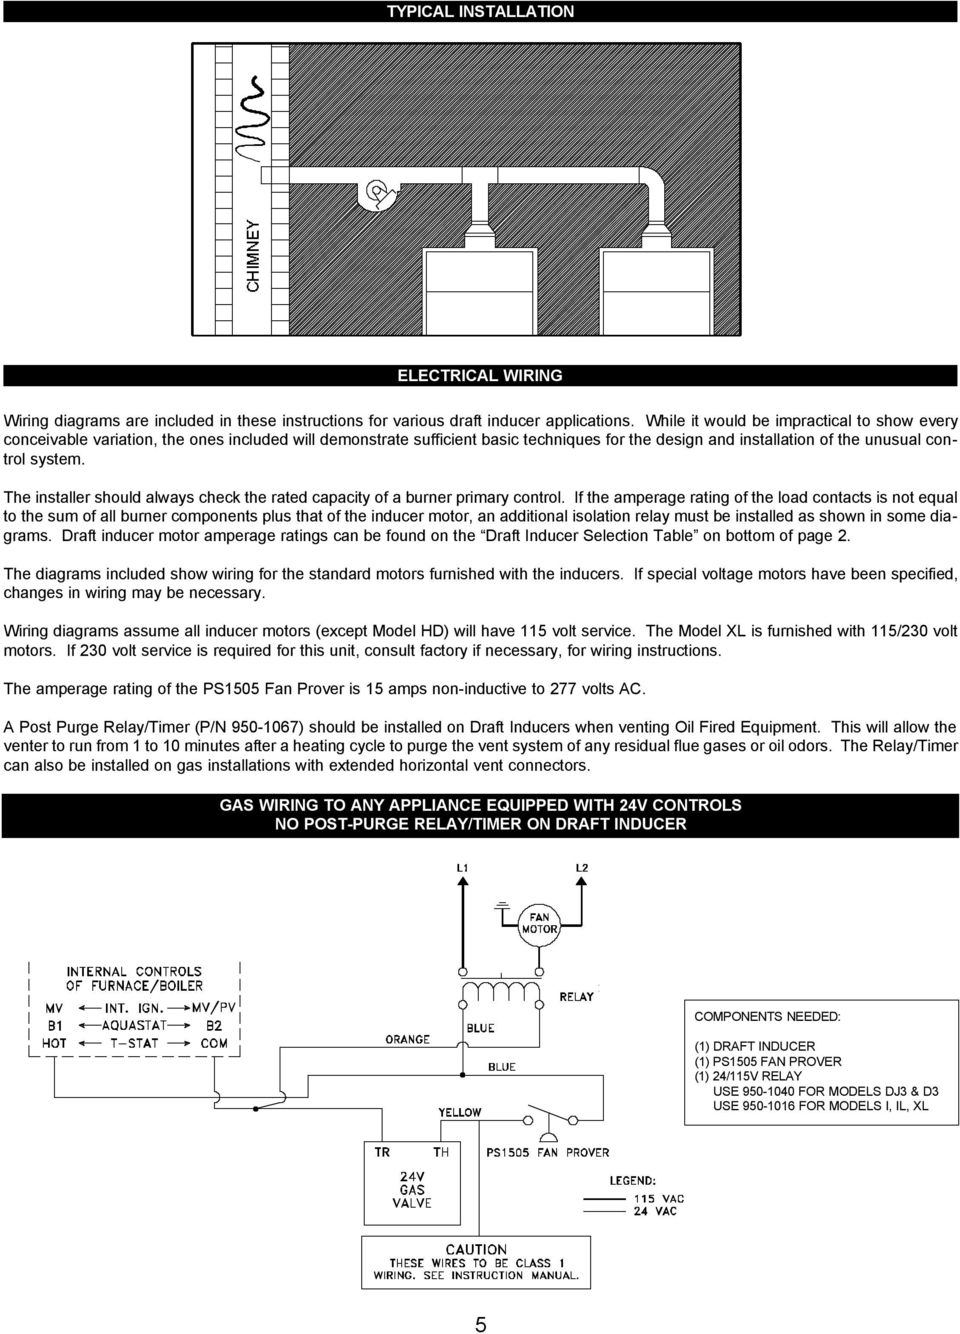 Auto Draft Inducer Installation Instructions Models D 3 Xl Pdf Gas Valve Relay Wiring Diagram The Installer Should Always Check Rated Capacity Of A Burner Primary Control 7